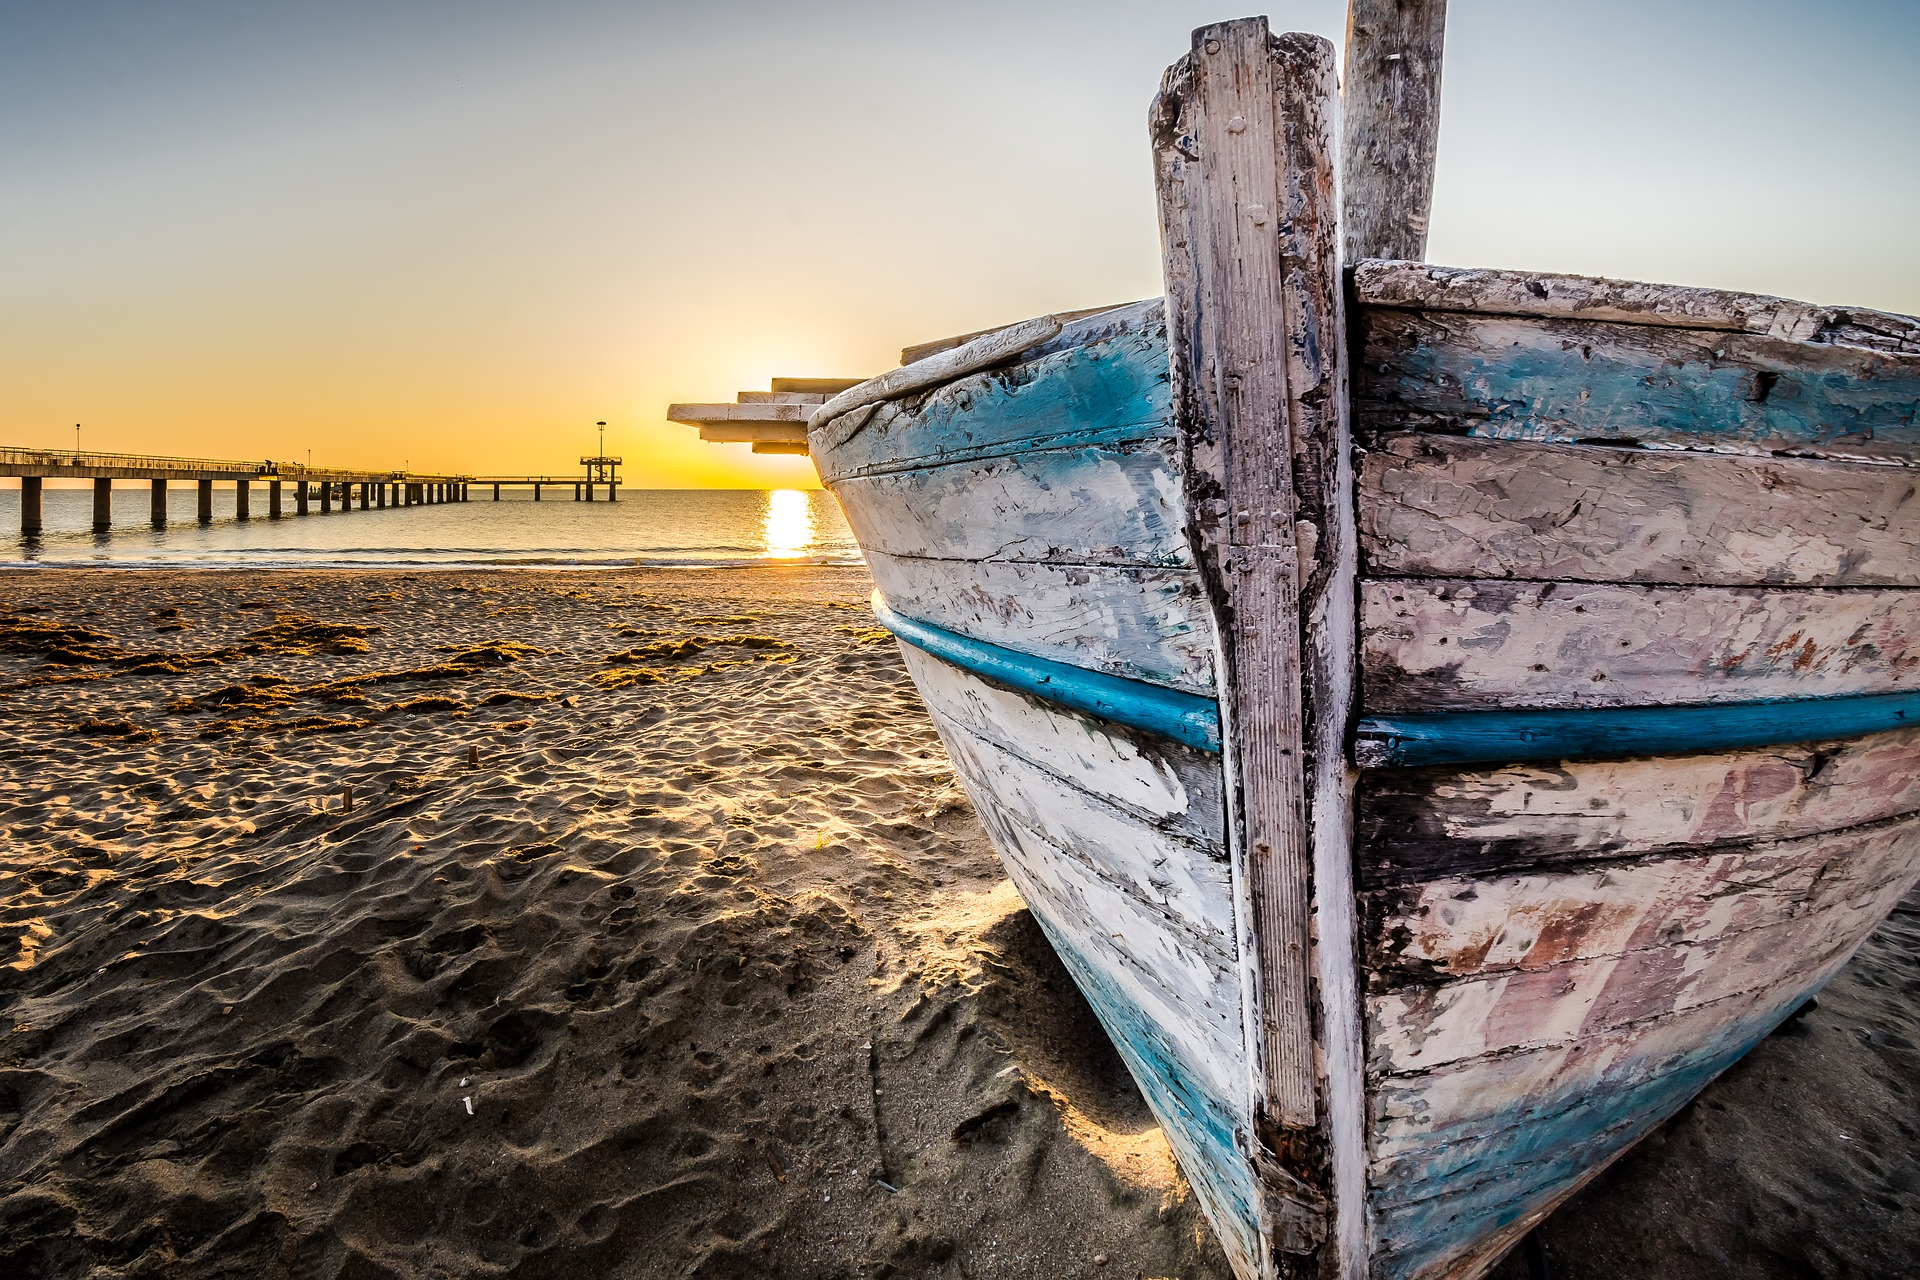 old-wooden-boat-at-sunrise-2873907_1920